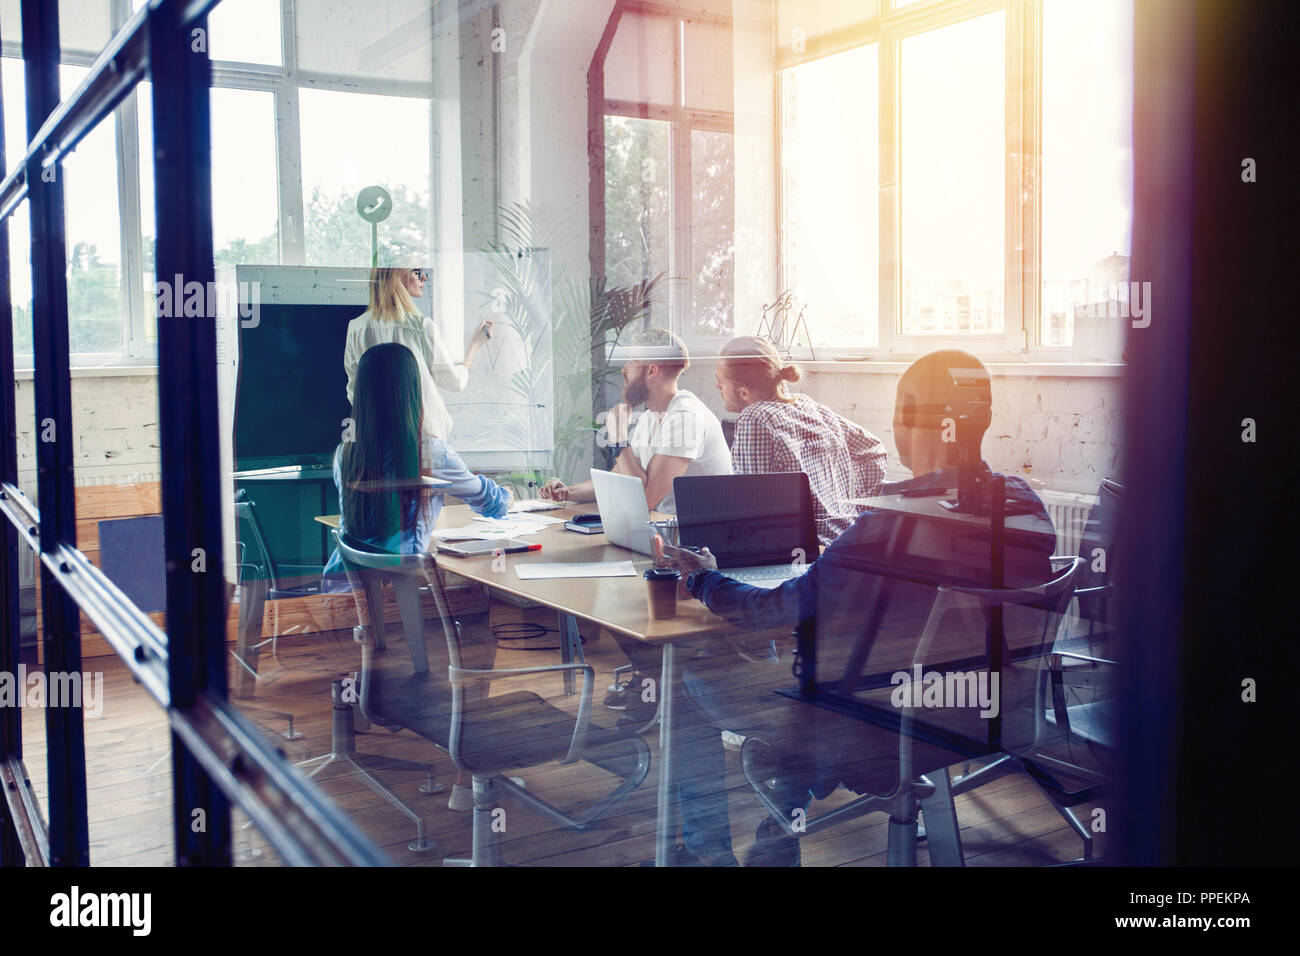 Working hard to win. Businesswoman conducting a business presentation using flipchart while working in the creative office. - Stock Image